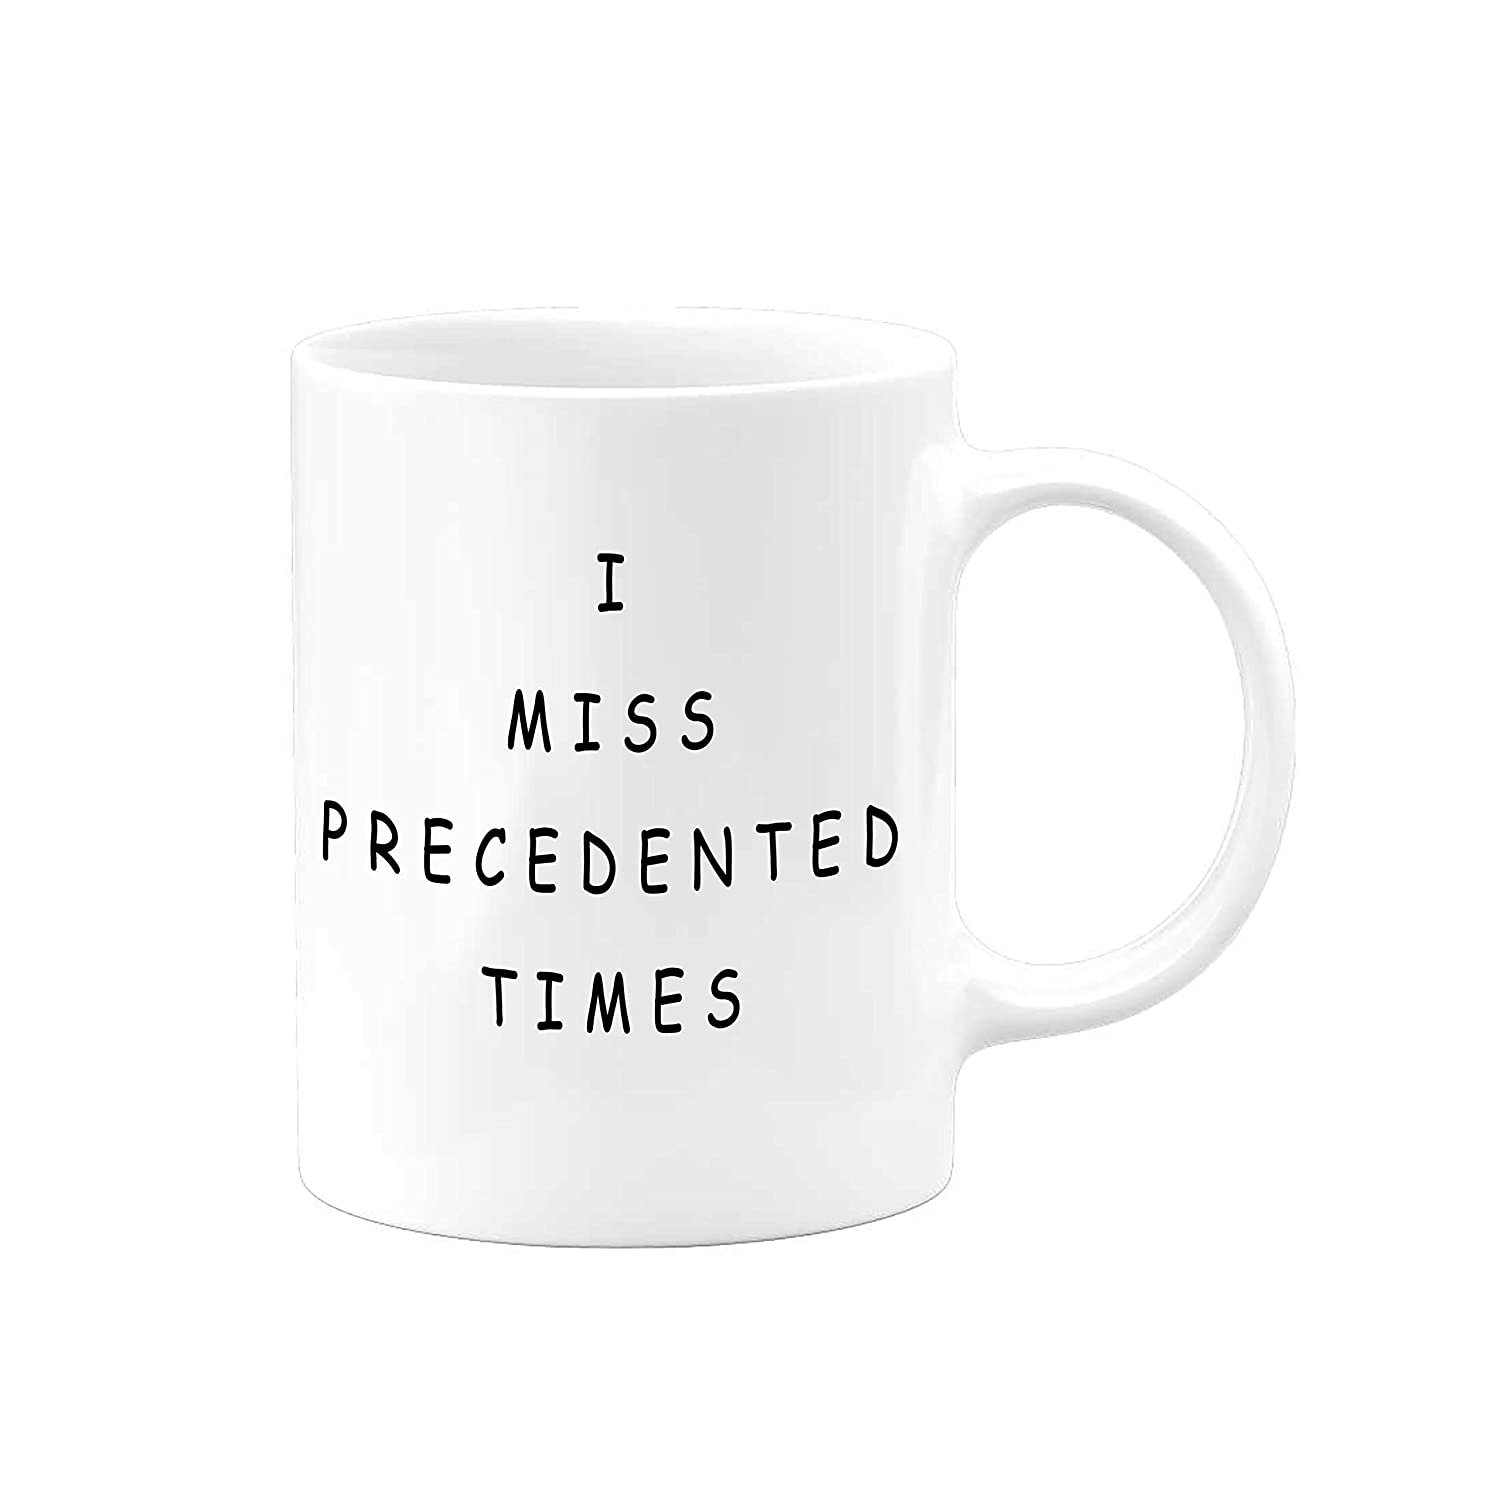 funny-gifts-for-men-precedented-times-coffee-mug